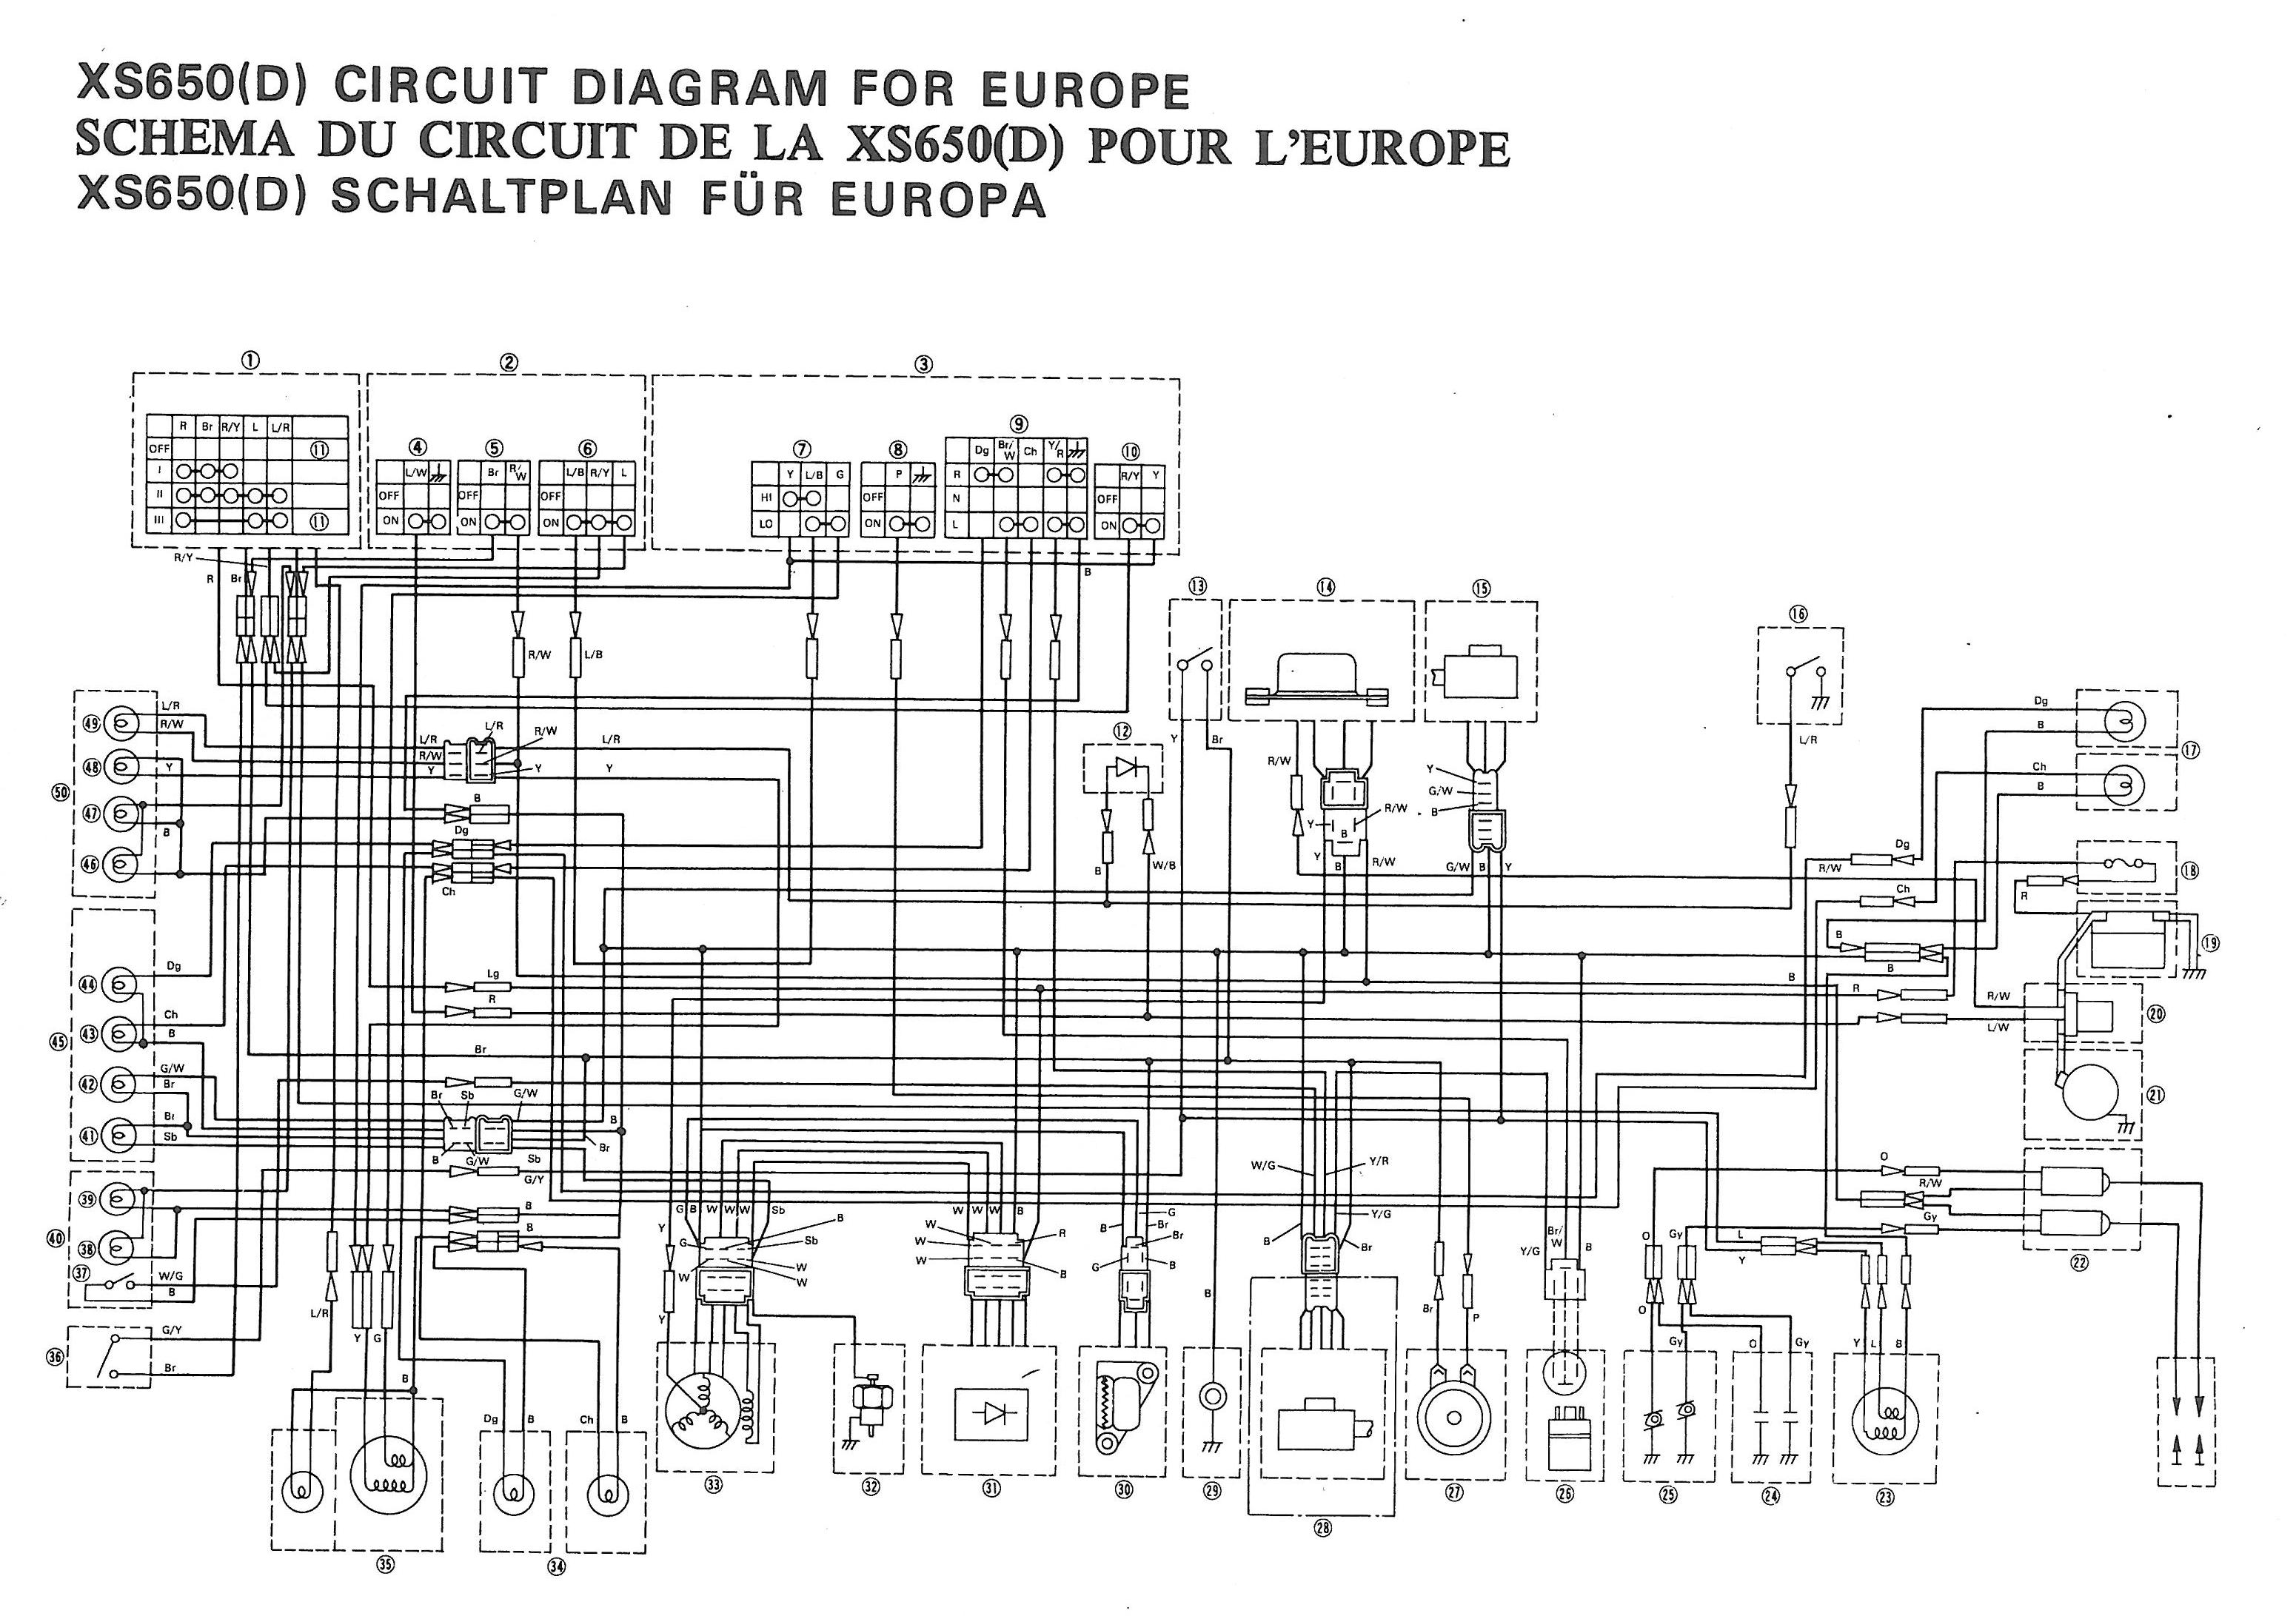 77 xs d wiring europe circuit thexscafe 1975 xs650 wiring diagram at gsmx.co